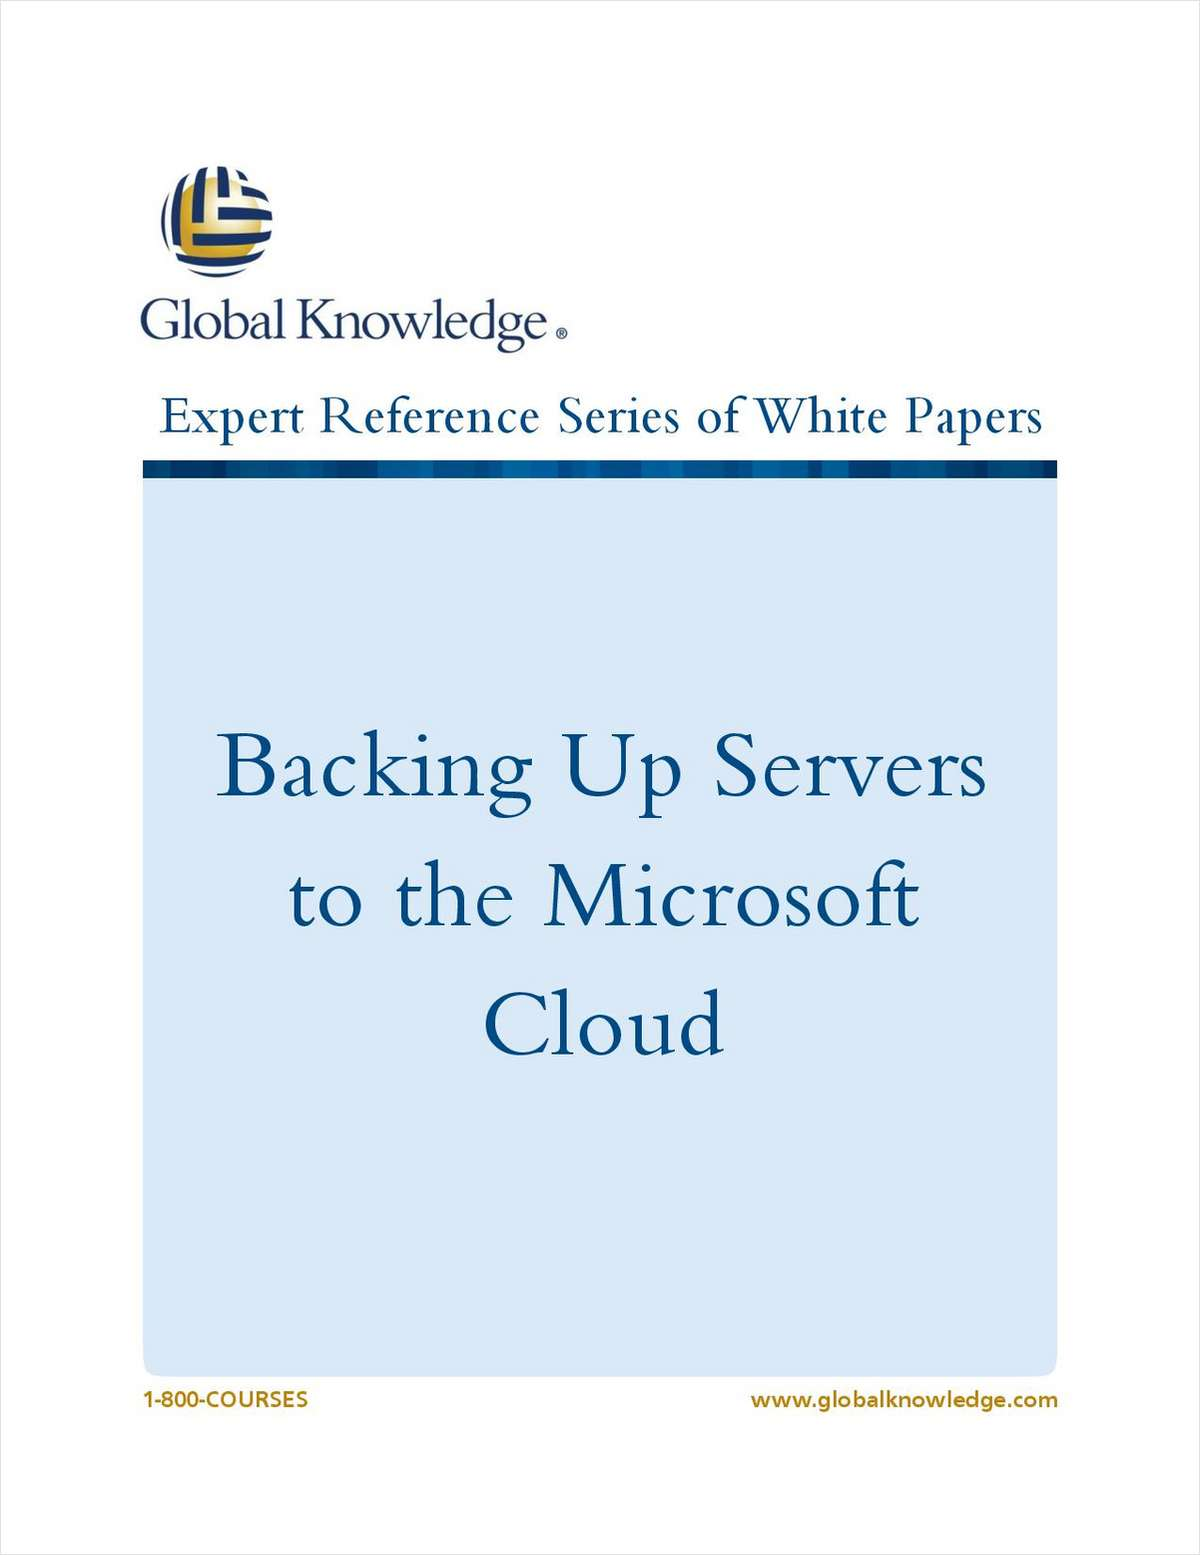 Backing Up Servers to the Microsoft Cloud